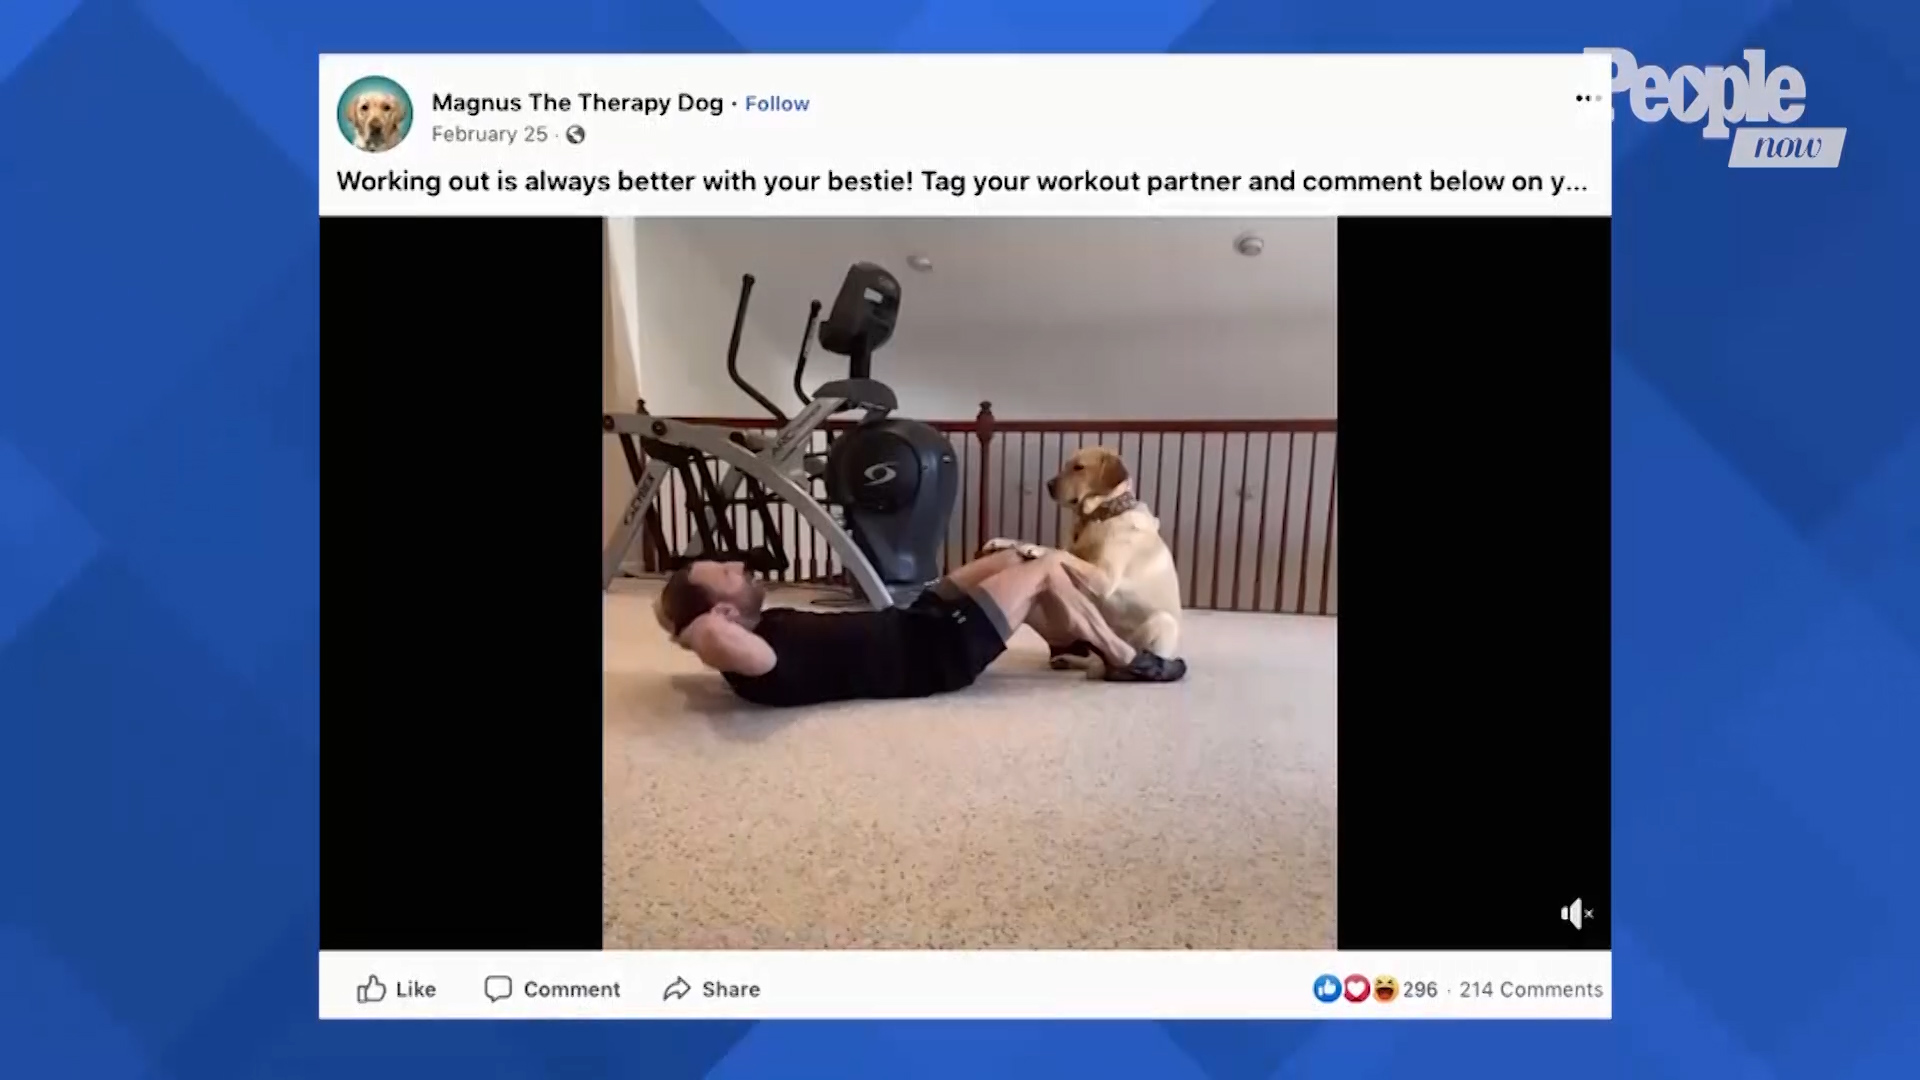 WATCH This Dog Help His Human with His Daily Workout Routines